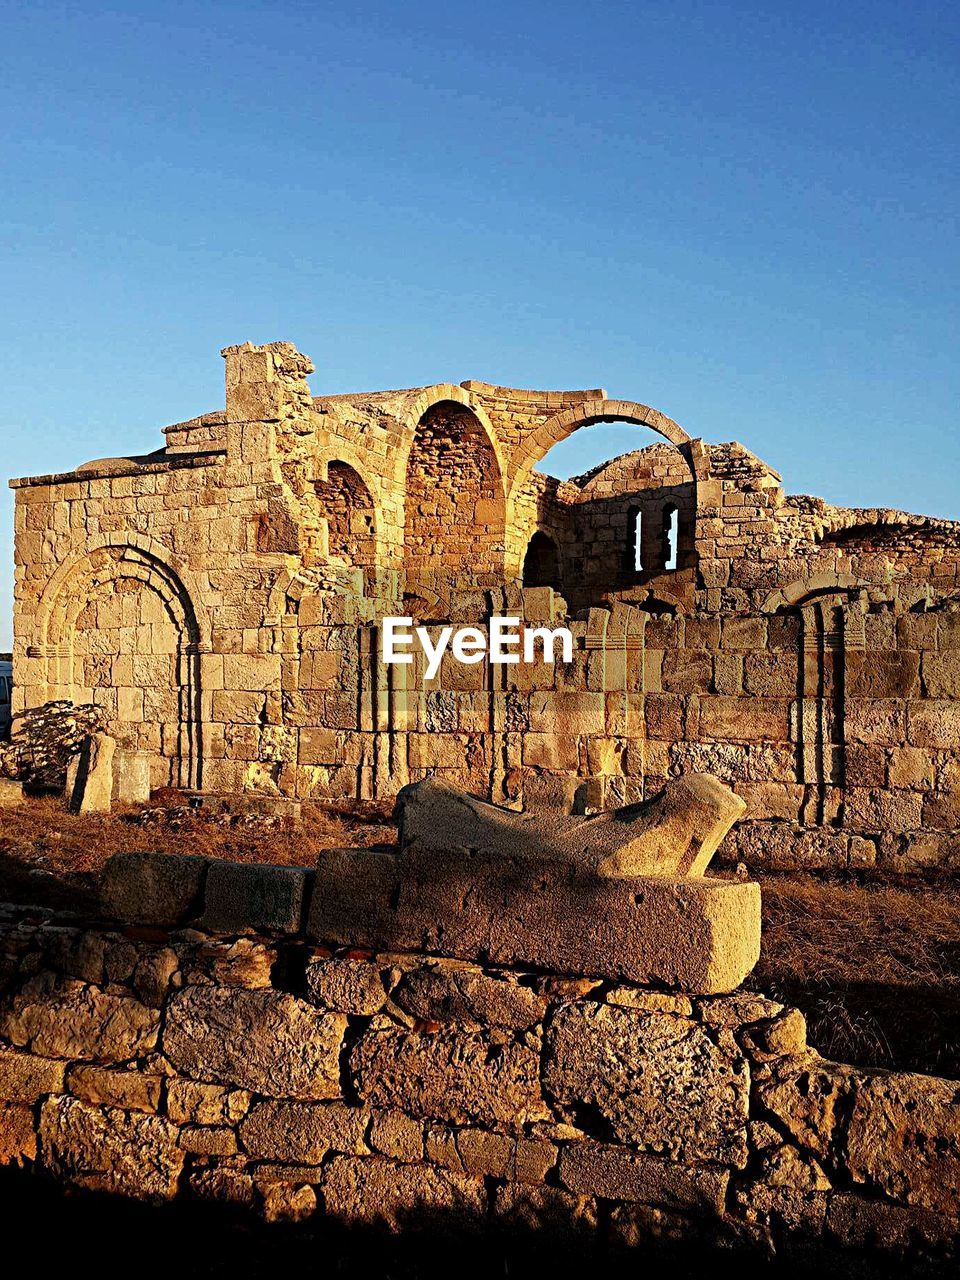 history, the past, ancient, architecture, built structure, clear sky, sky, old ruin, wall, old, building exterior, damaged, arch, blue, travel destinations, day, ruined, ancient civilization, nature, tourism, no people, deterioration, stone wall, archaeology, outdoors, arched